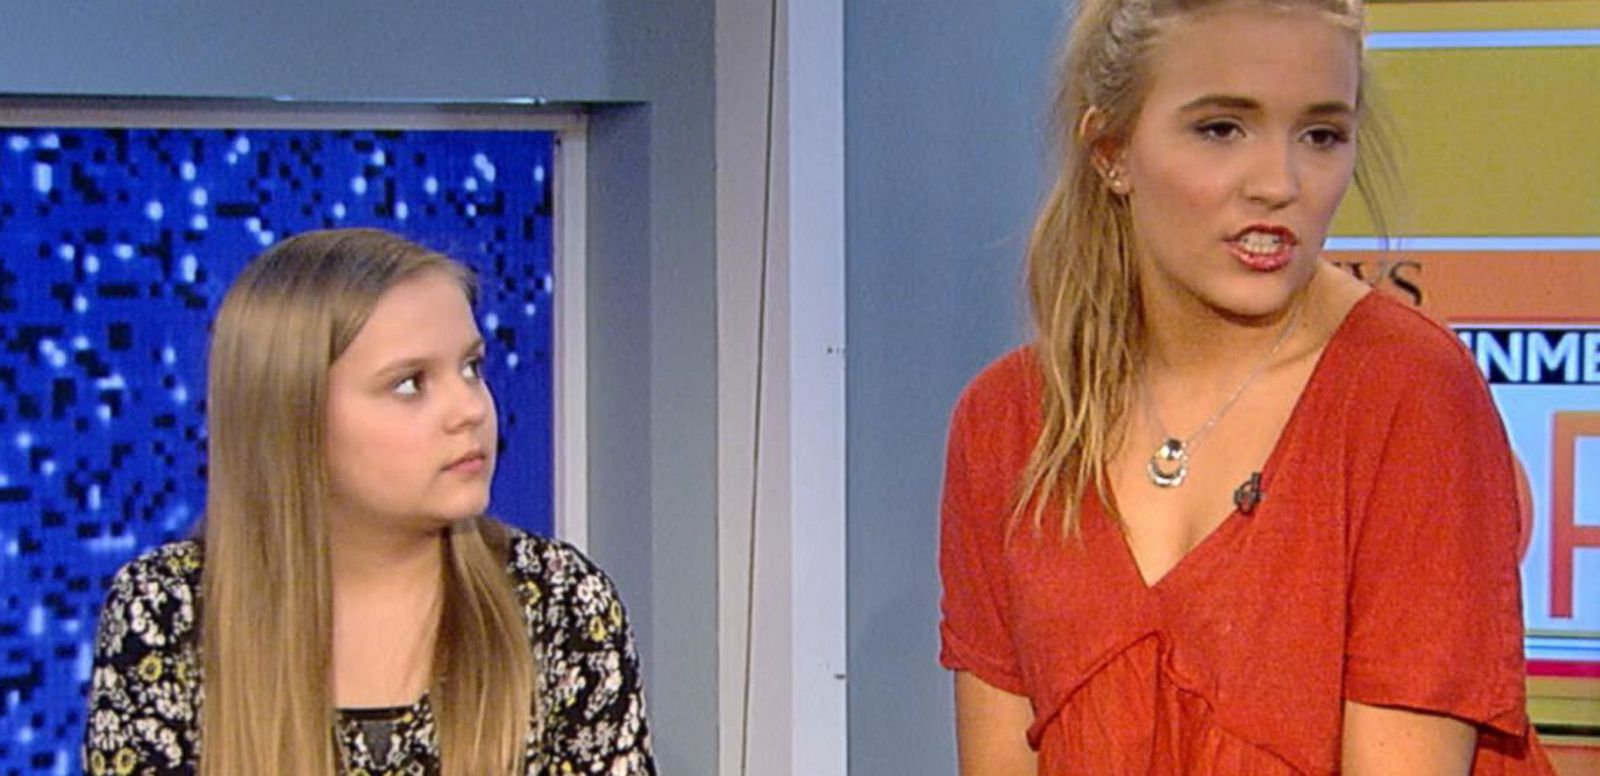 VIDEO: Watch Nashville's Lennon and Maisy Perform New Song